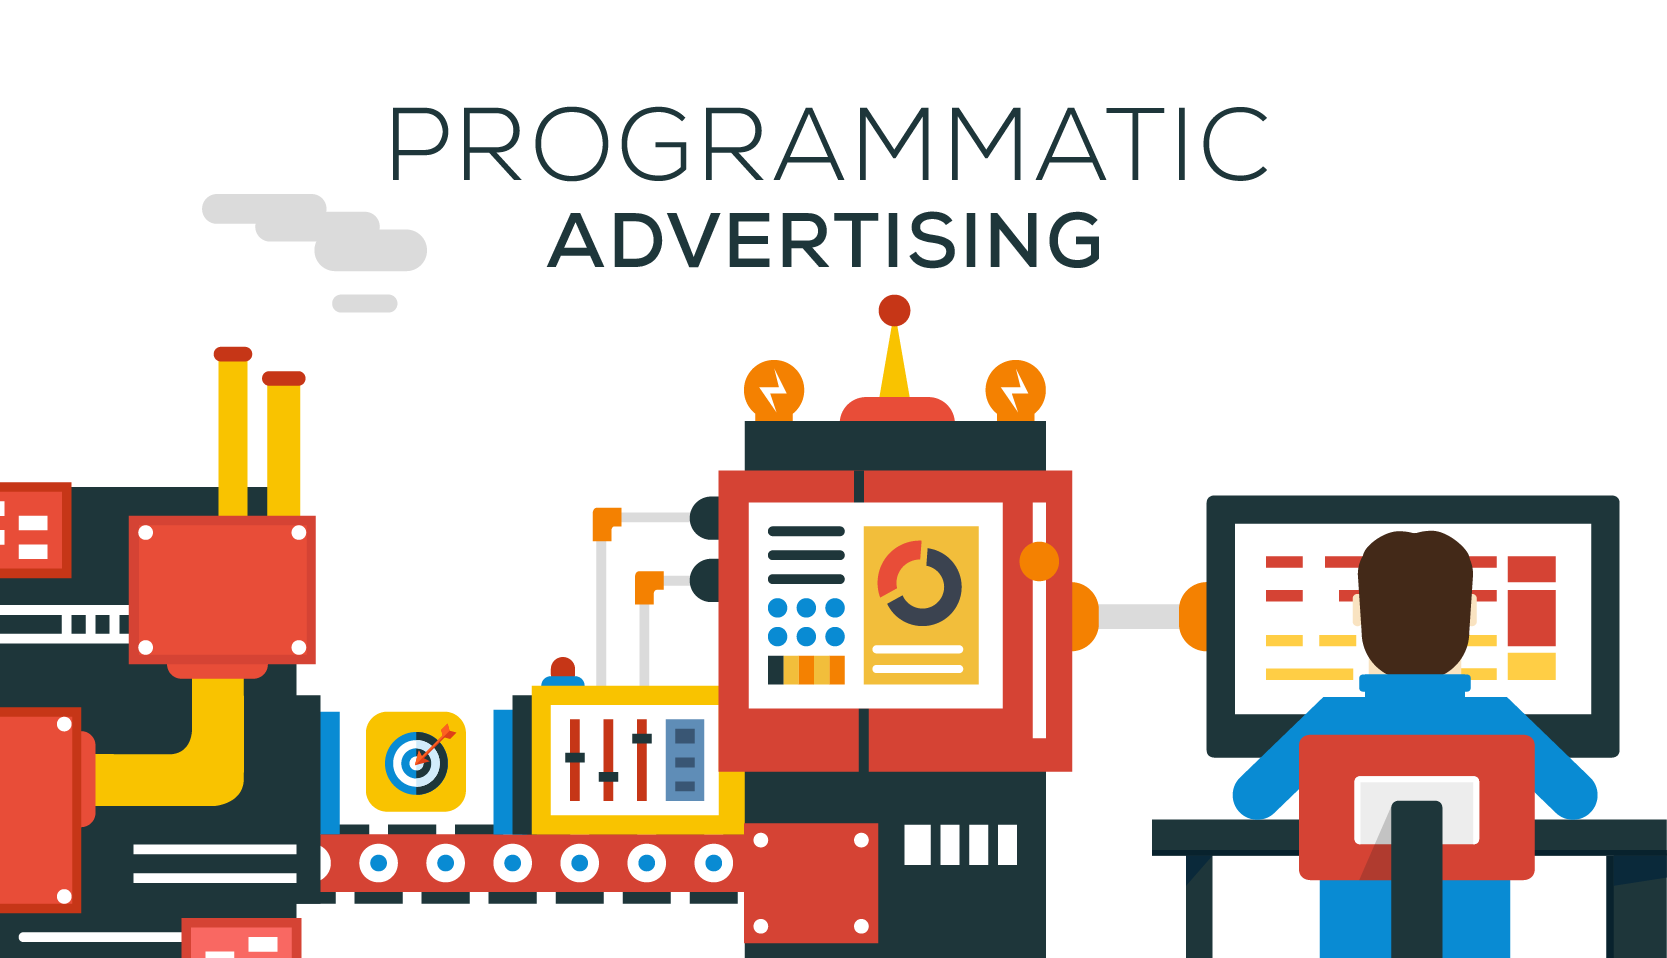 Tips on programmatic advertising management services